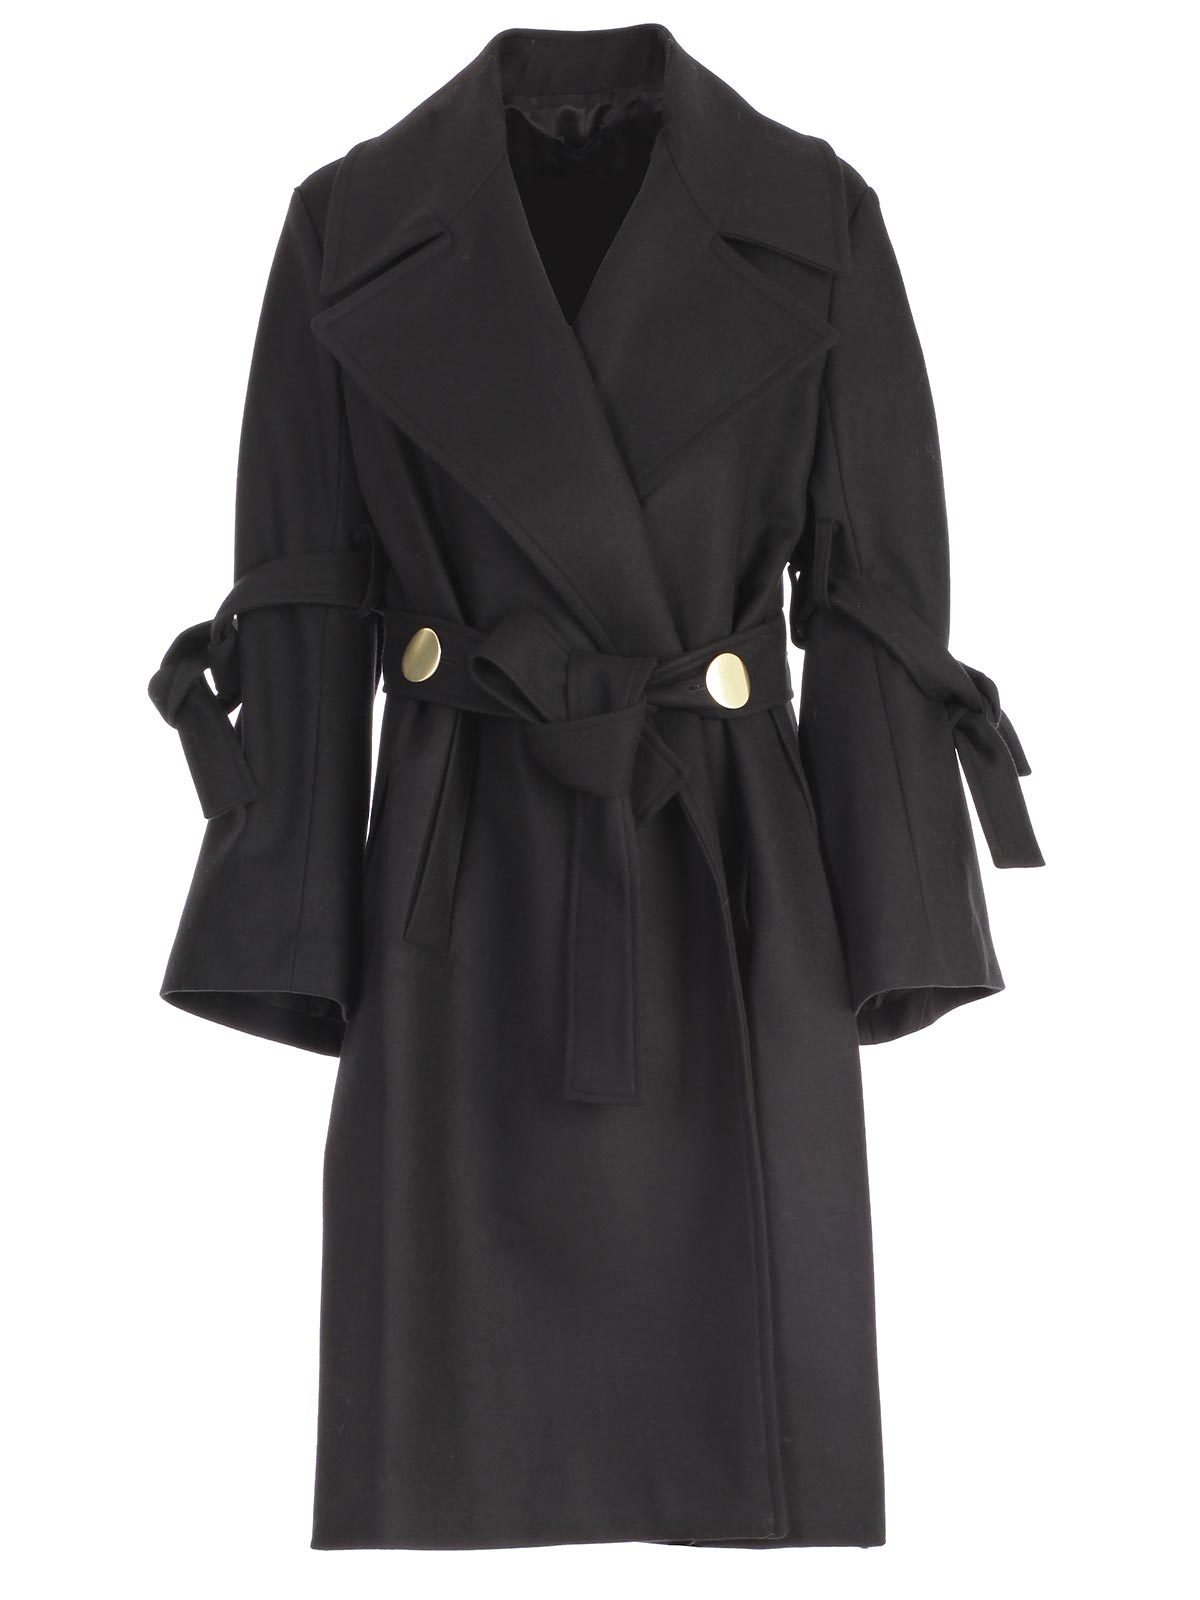 Picture of Eudon Choi Trench & Raincoat